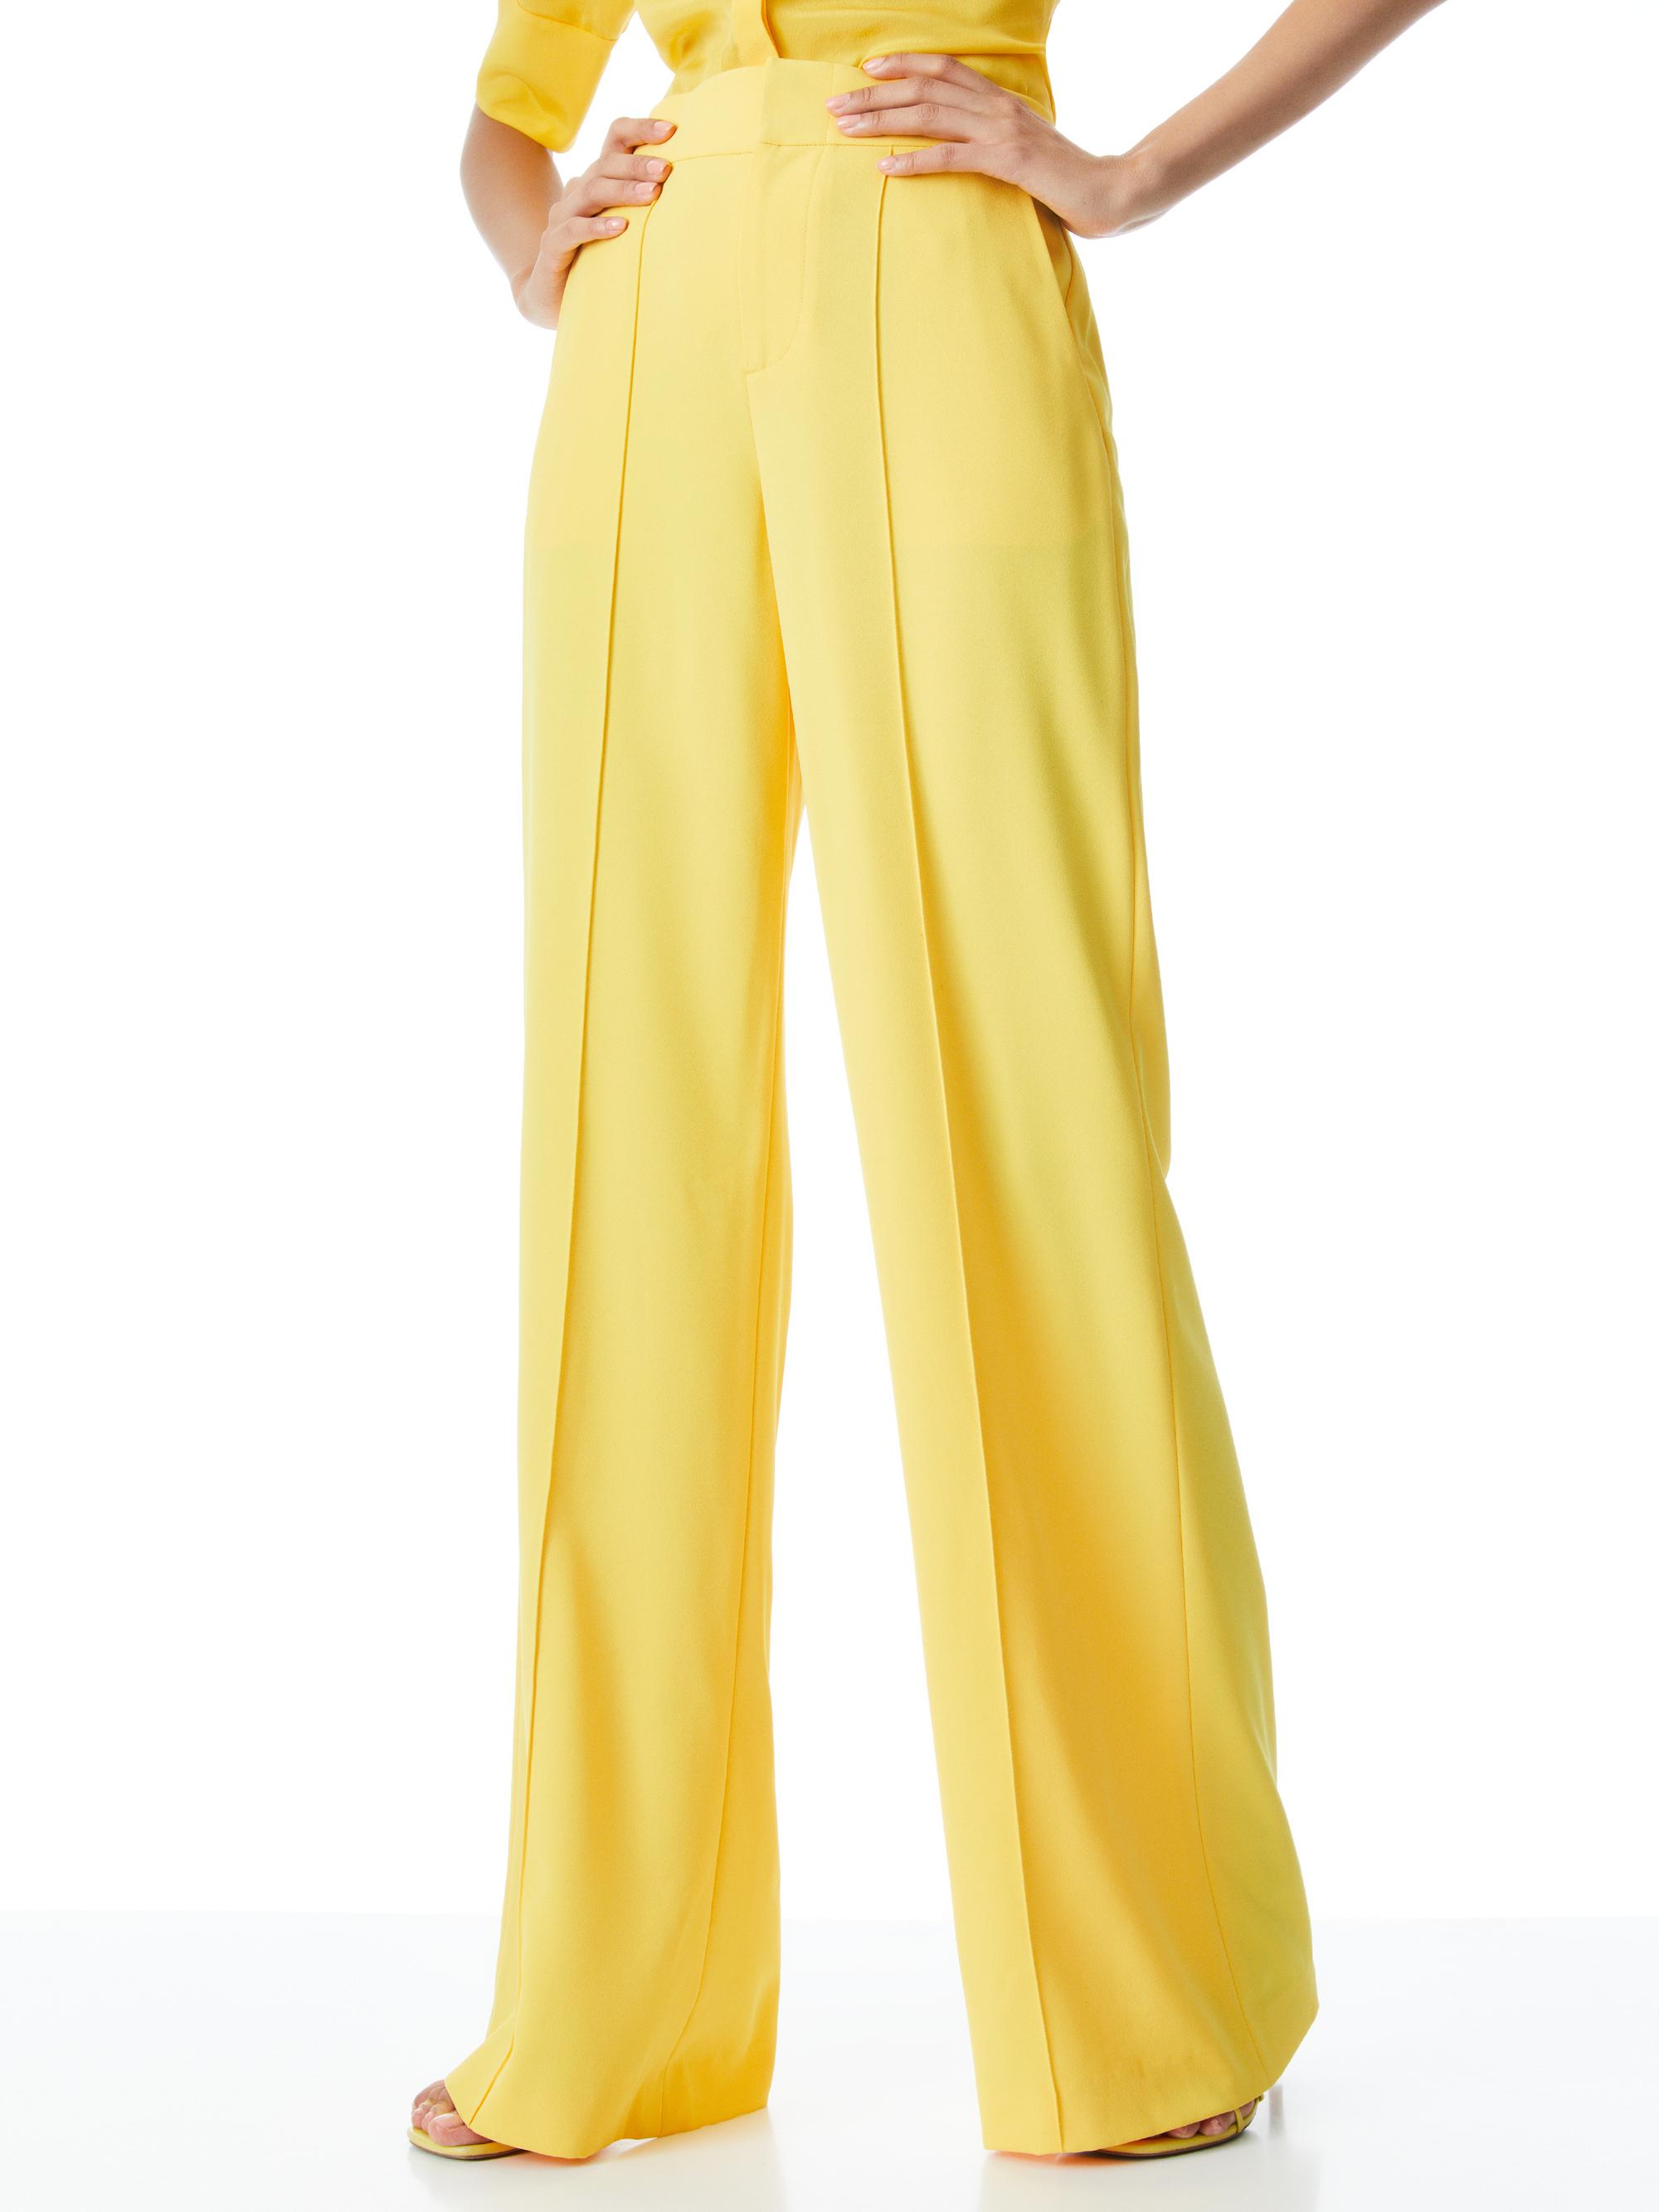 DYLAN HIGH WAISTED WIDE LEG PANT